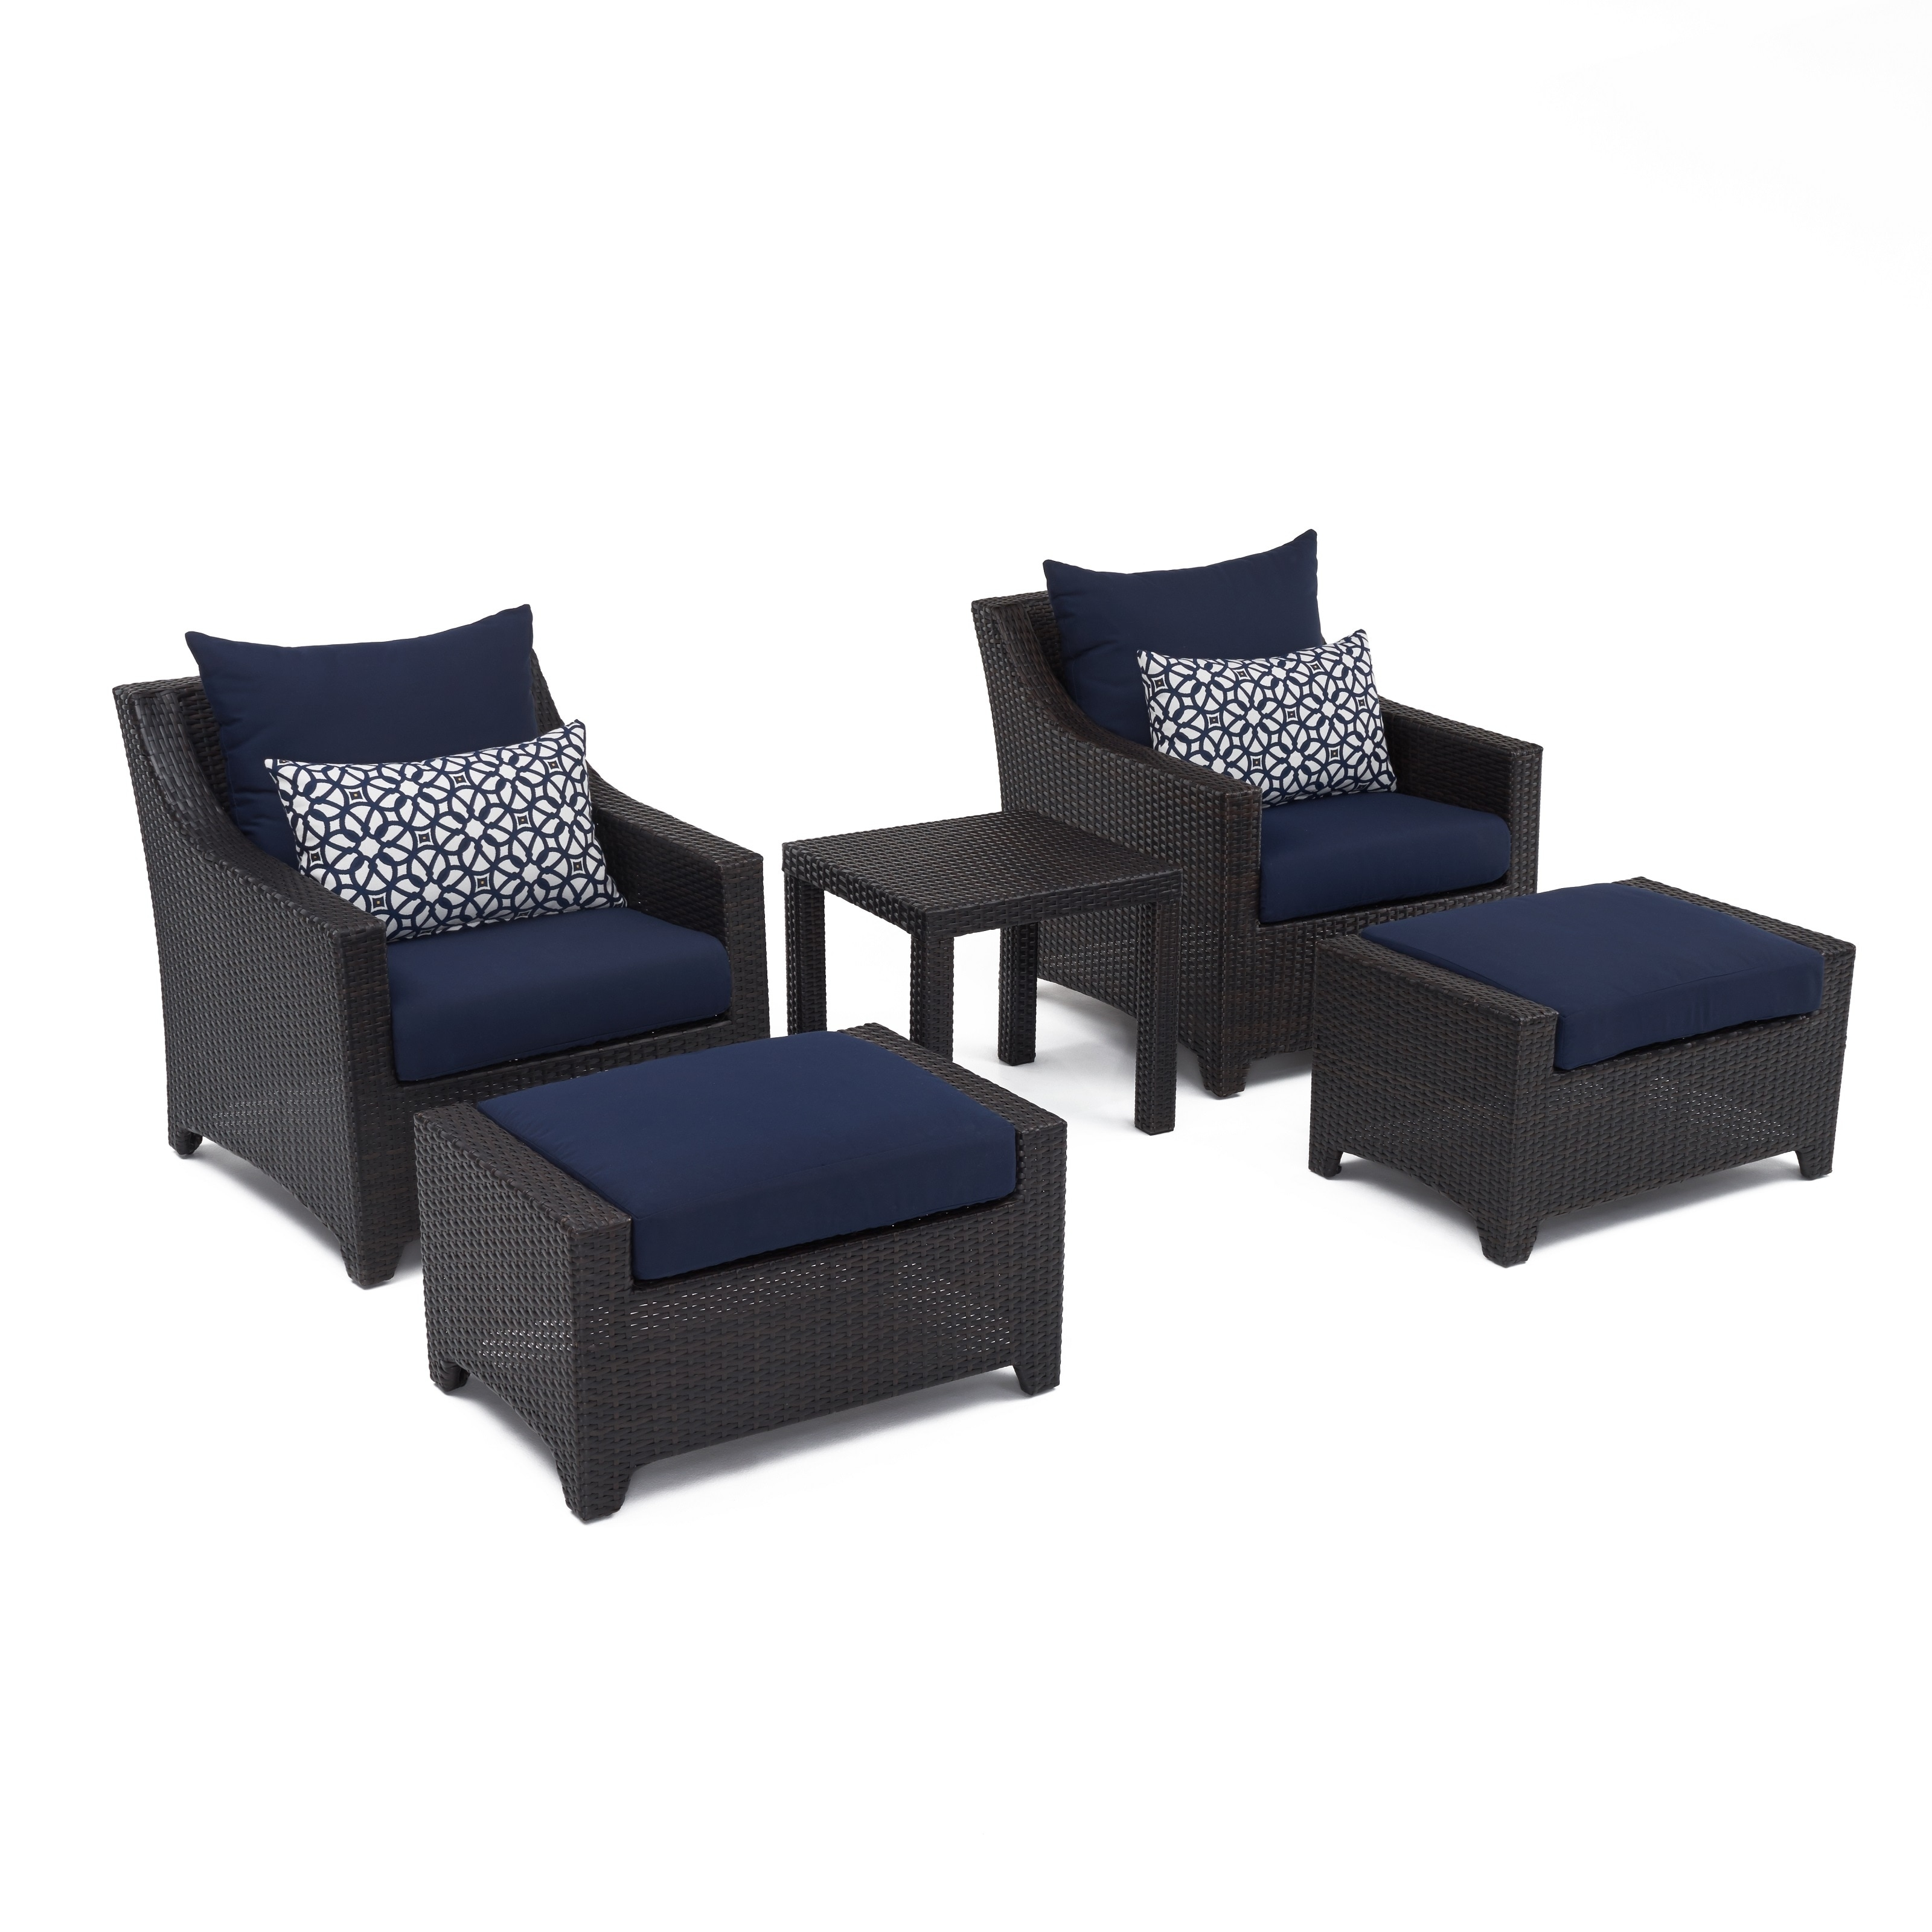 Shop Deco 5pc Club Chair And Ottoman Set With Navy Blue Cushions By